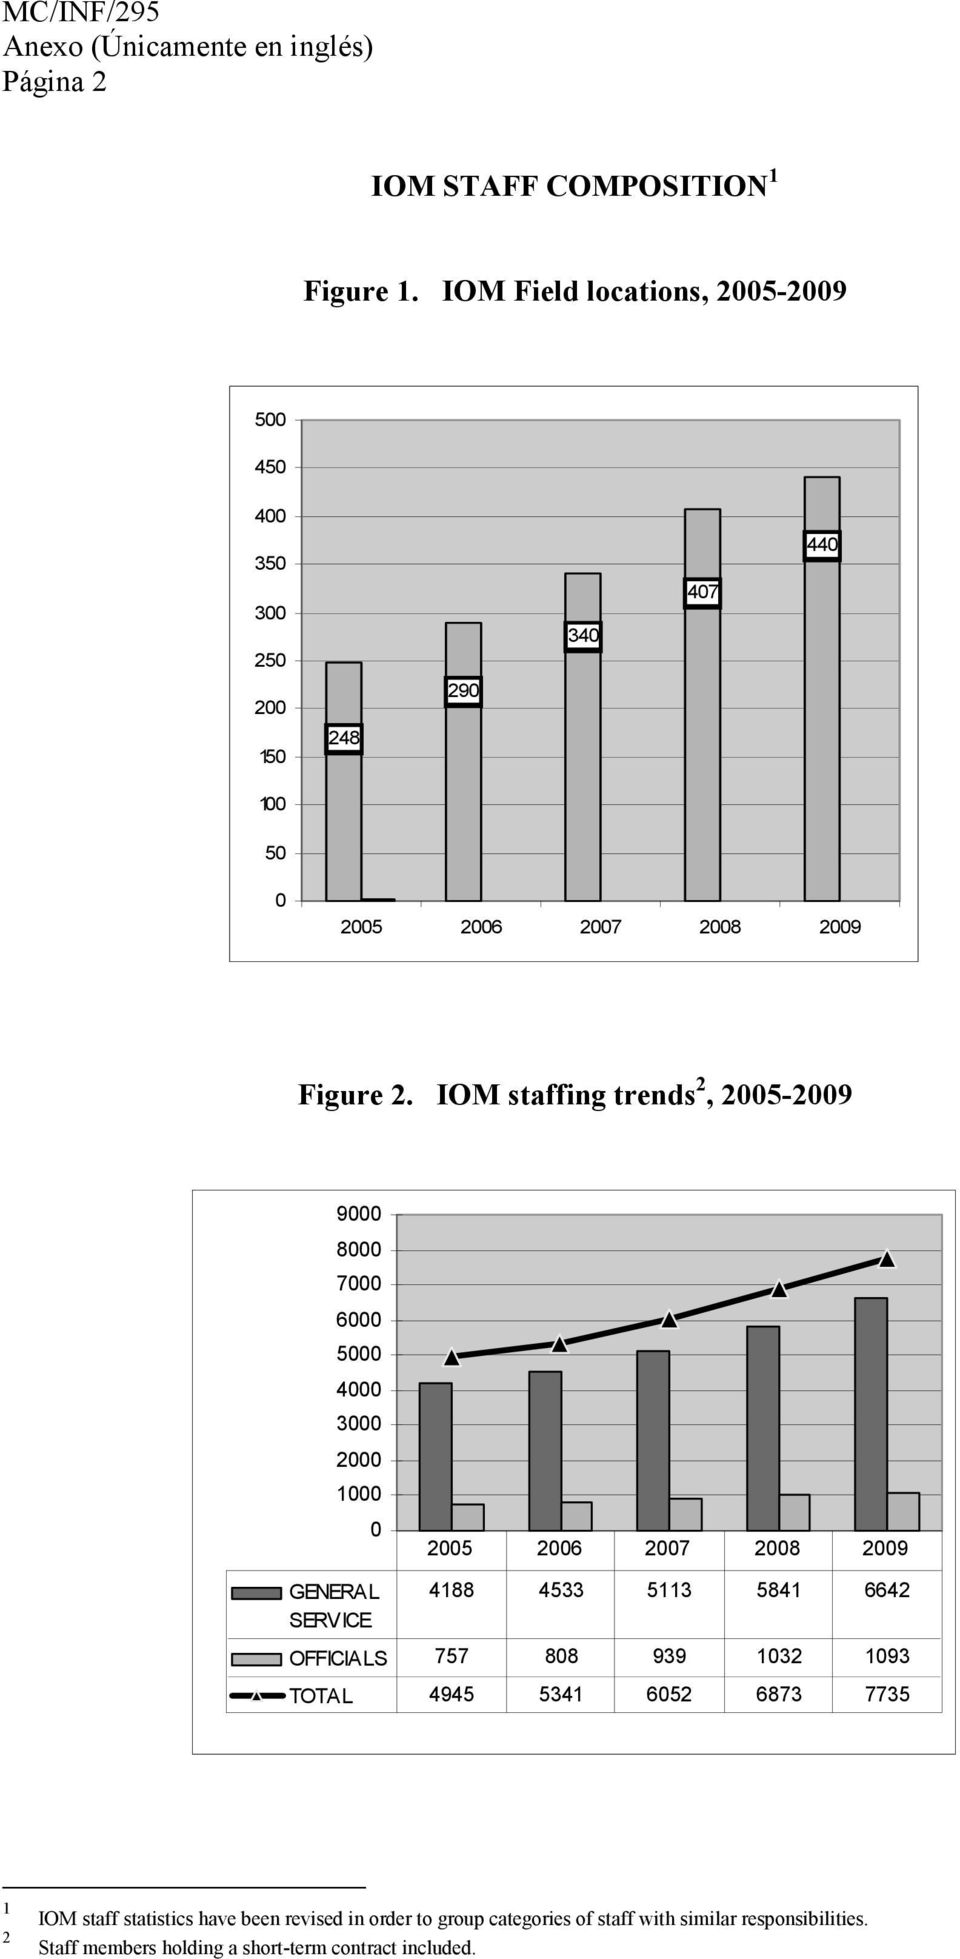 IOM staffing trends 2, 2005-2009 9000 8000 7000 6000 5000 4000 3000 2000 1000 0 GENERAL SERVICE 2005 2006 2007 2008 2009 4188 4533 5113